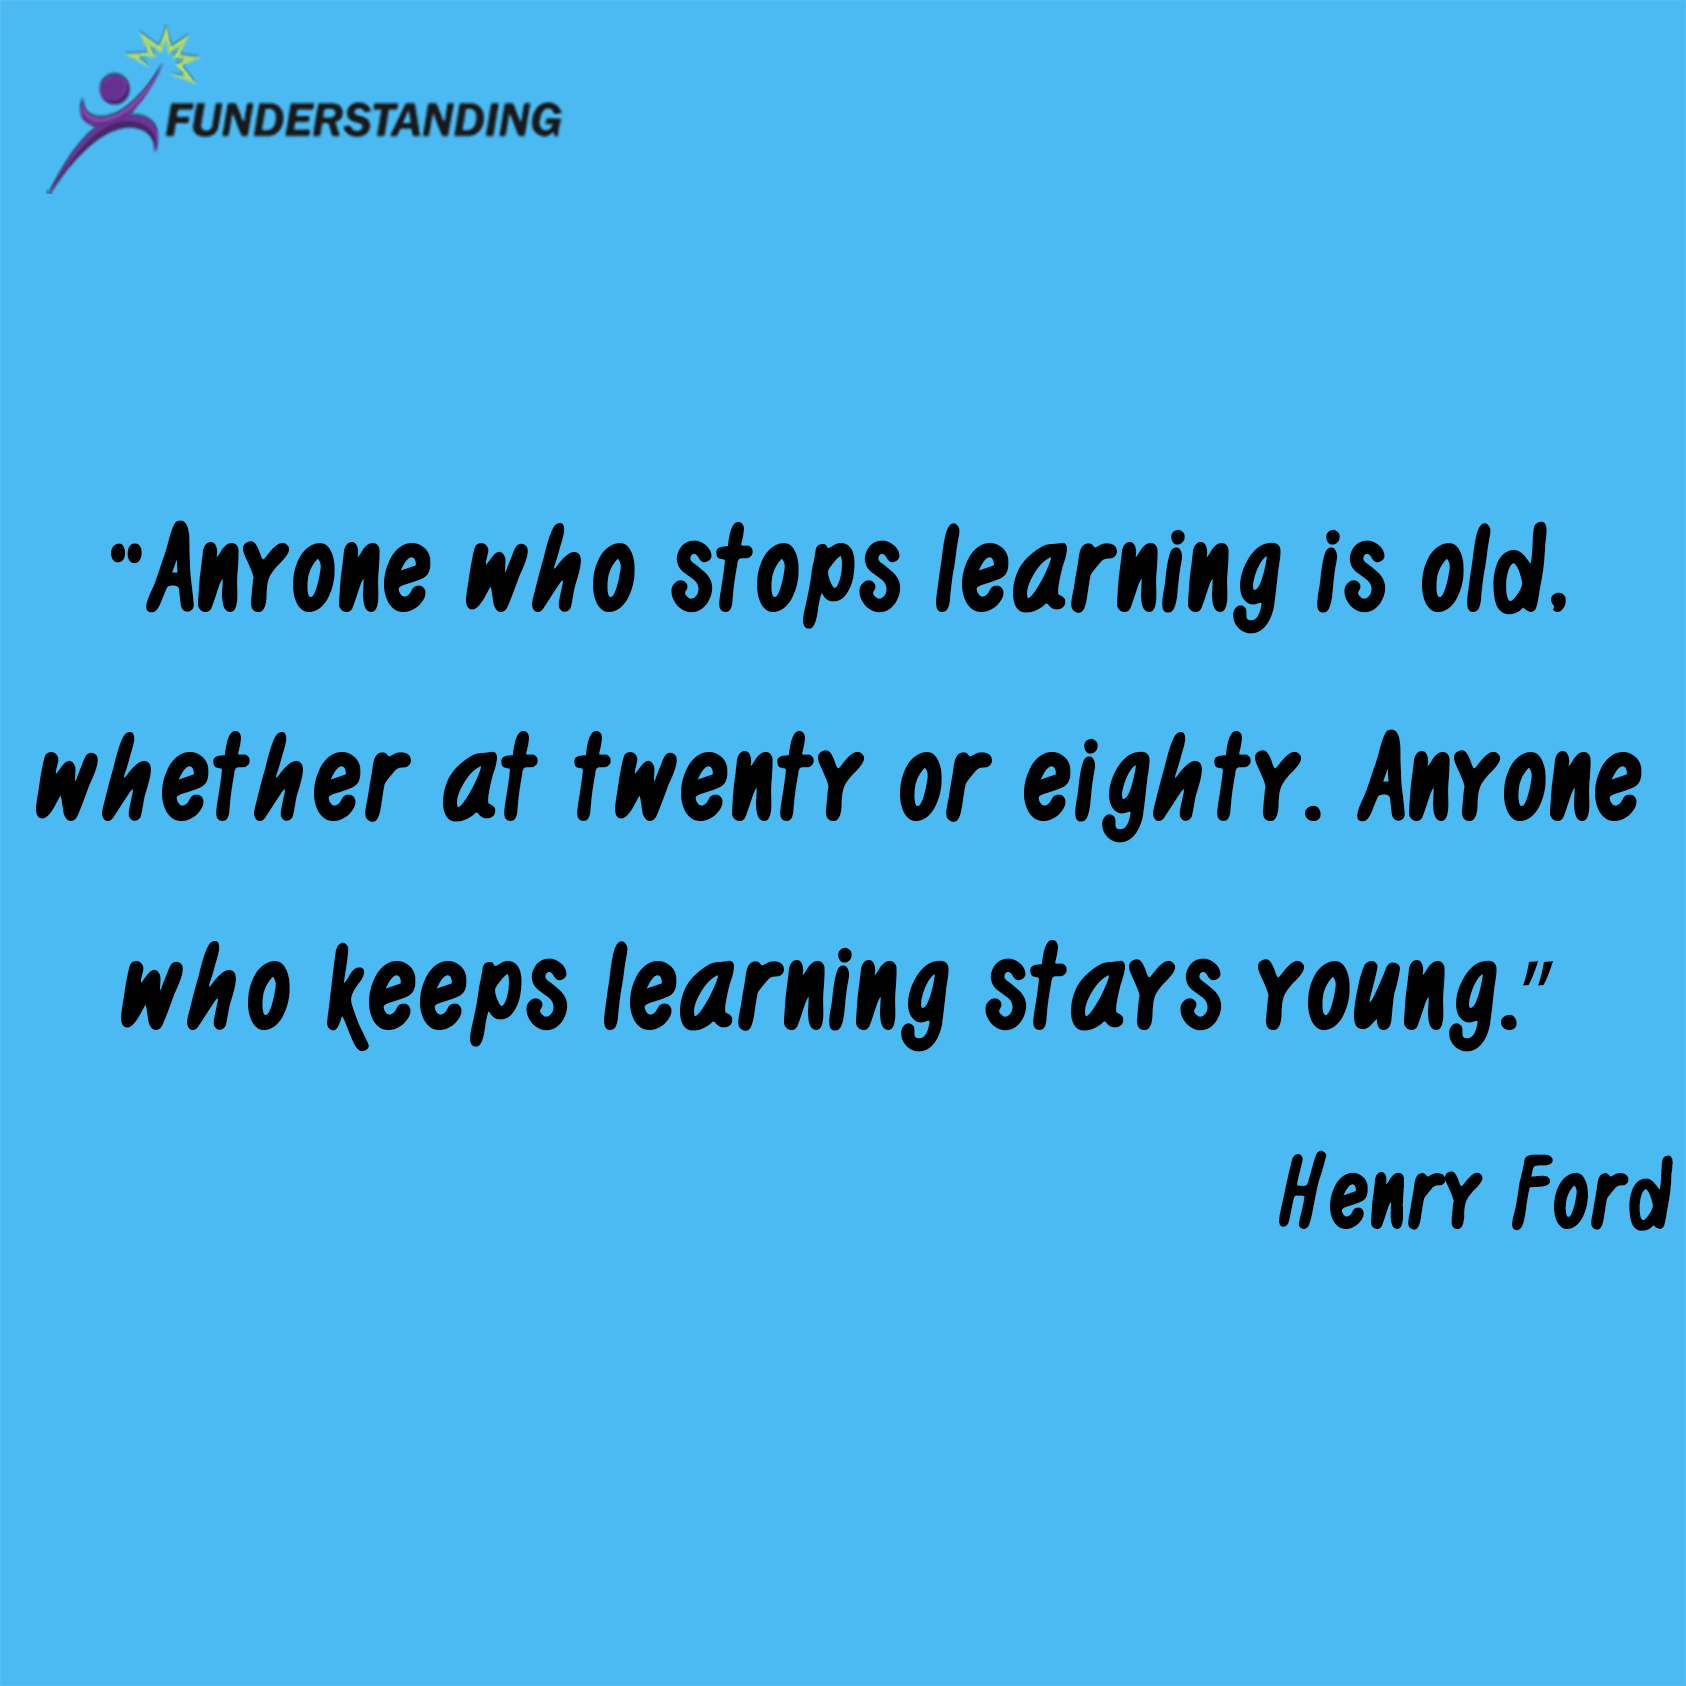 Quotes On Learning Awesome Quote Of The Day  Funderstanding  Are You Still Young  A